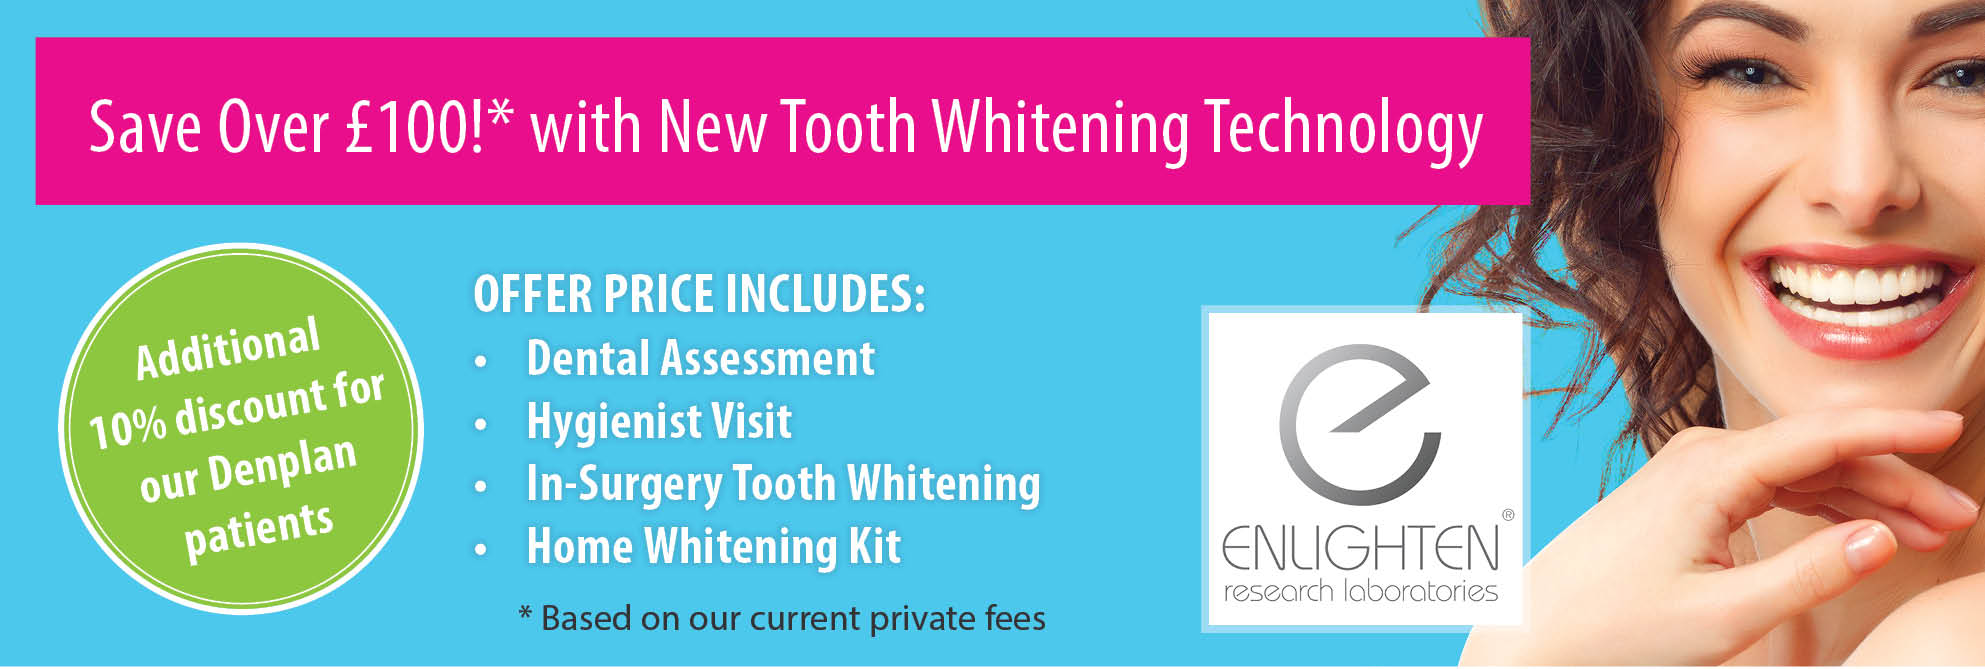 Save over £100 with New Tooth Whitening Technology